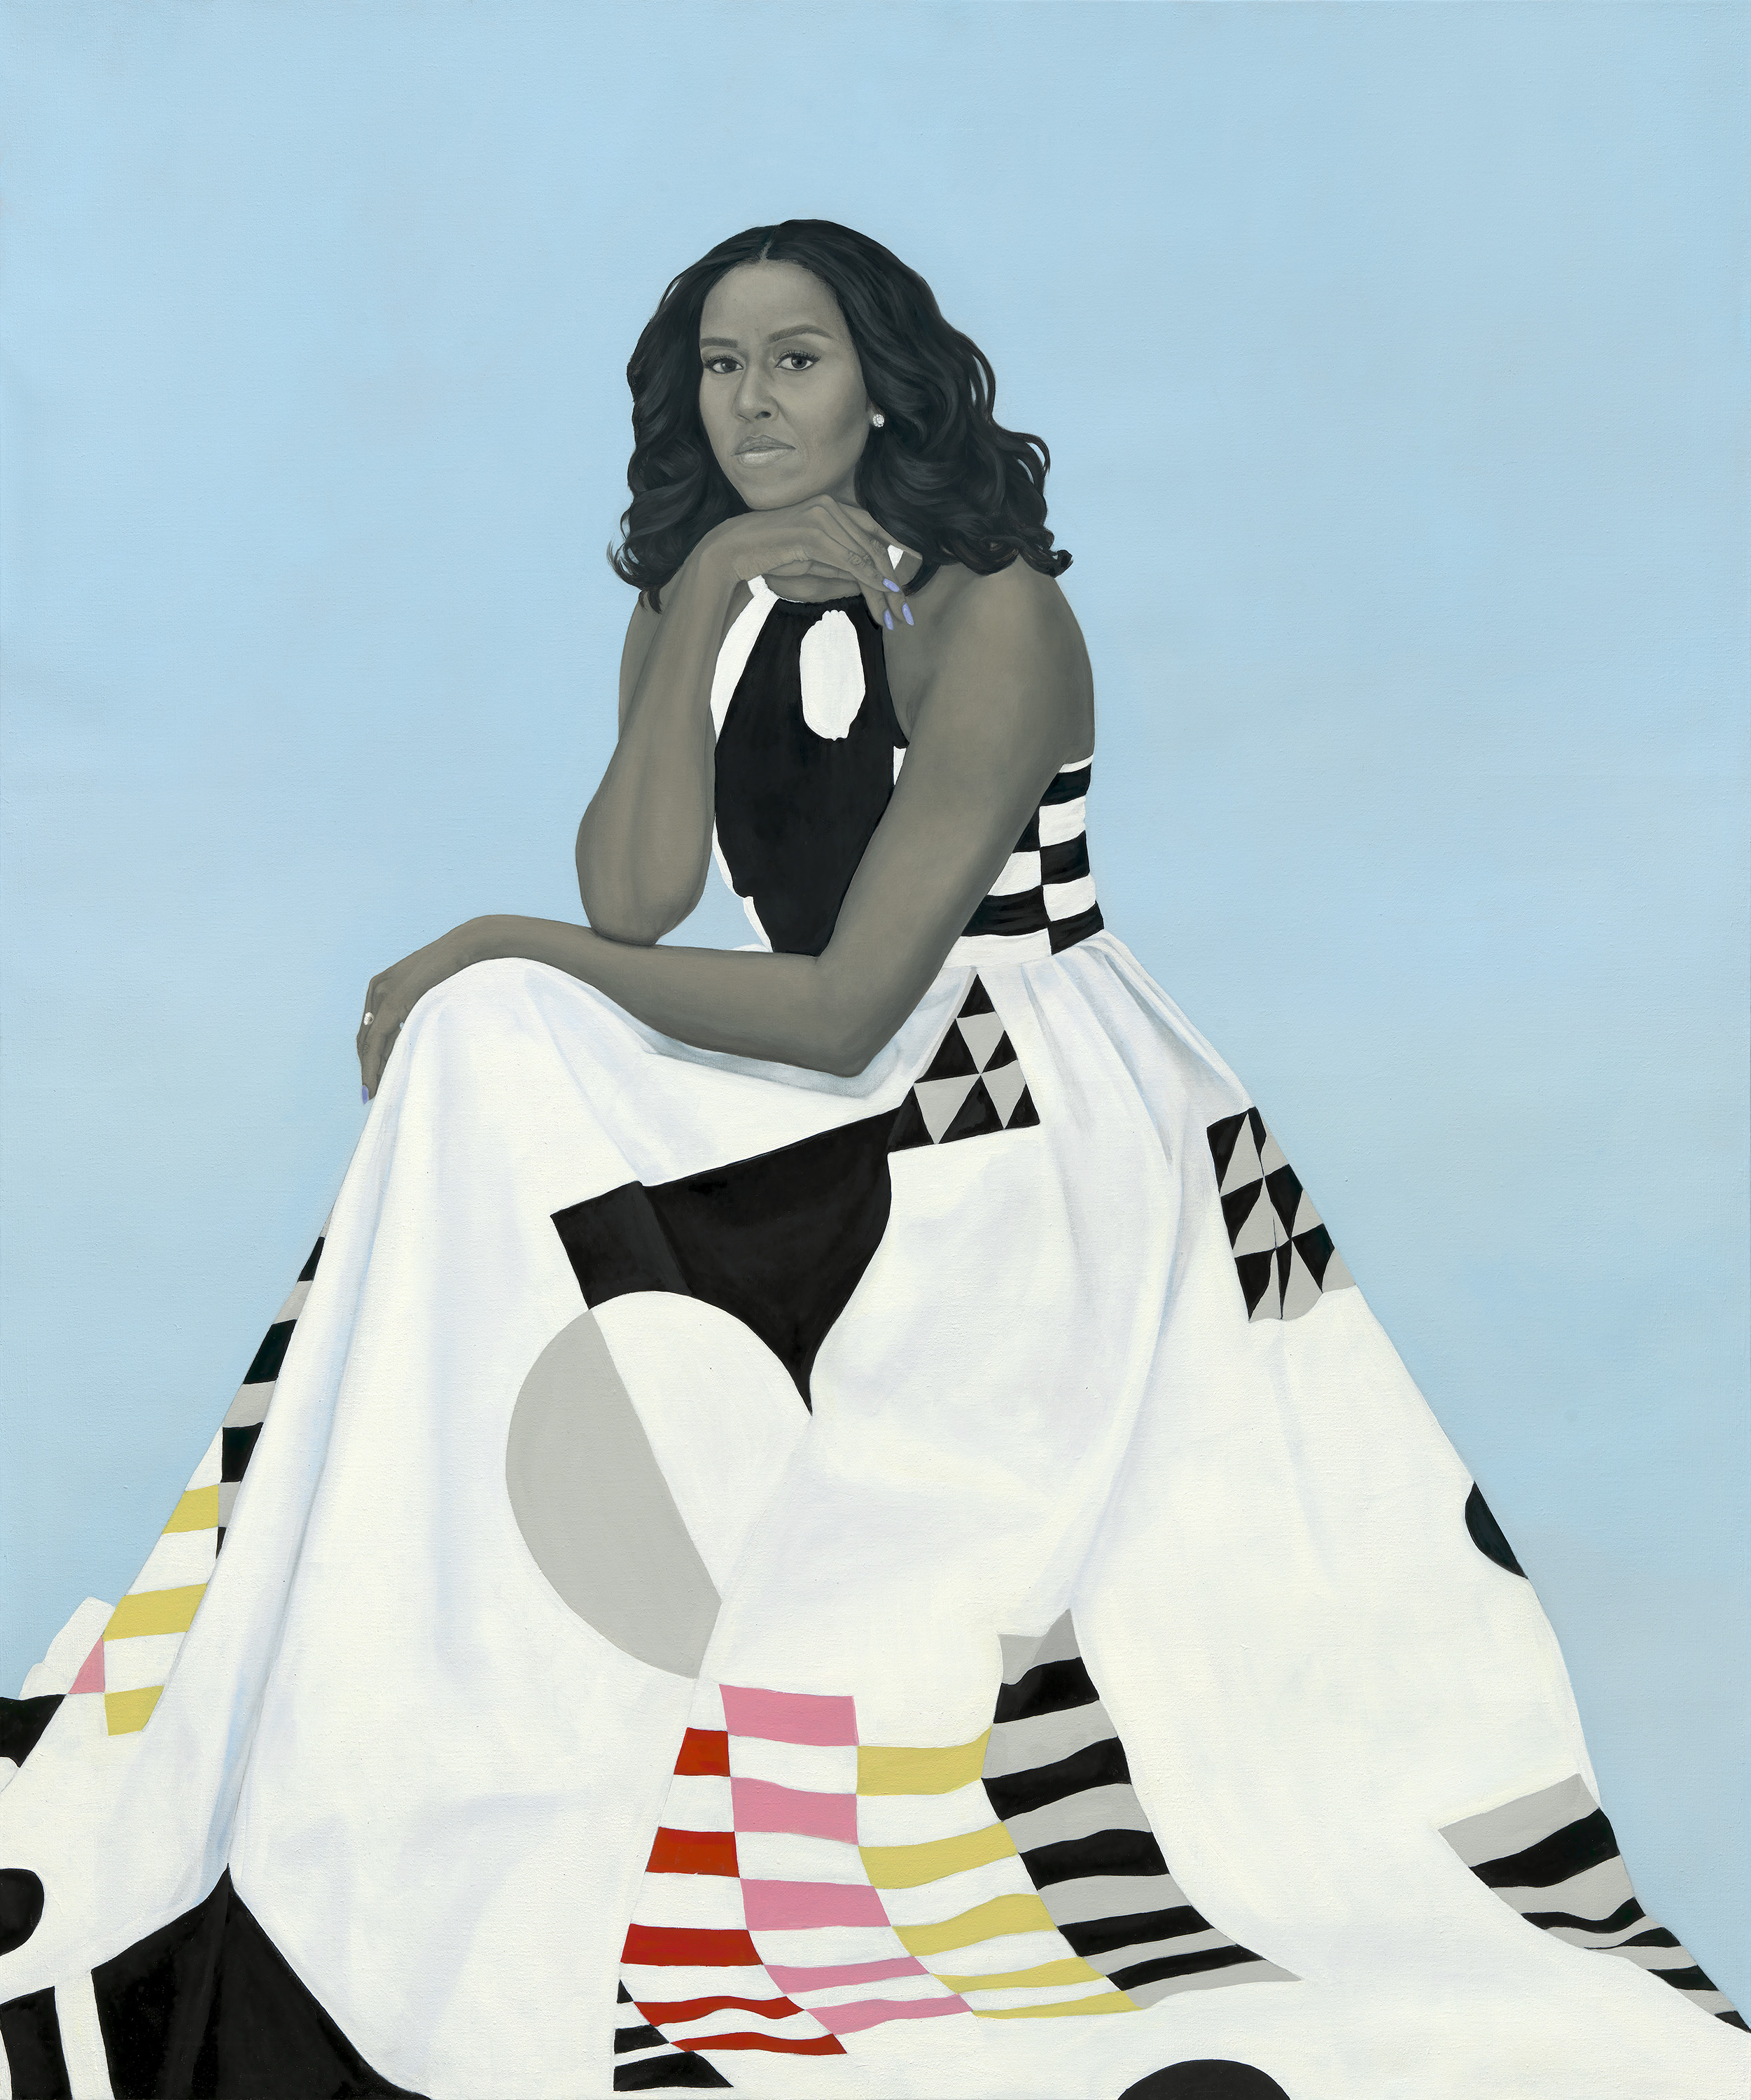 michelle obama smithsonian institution